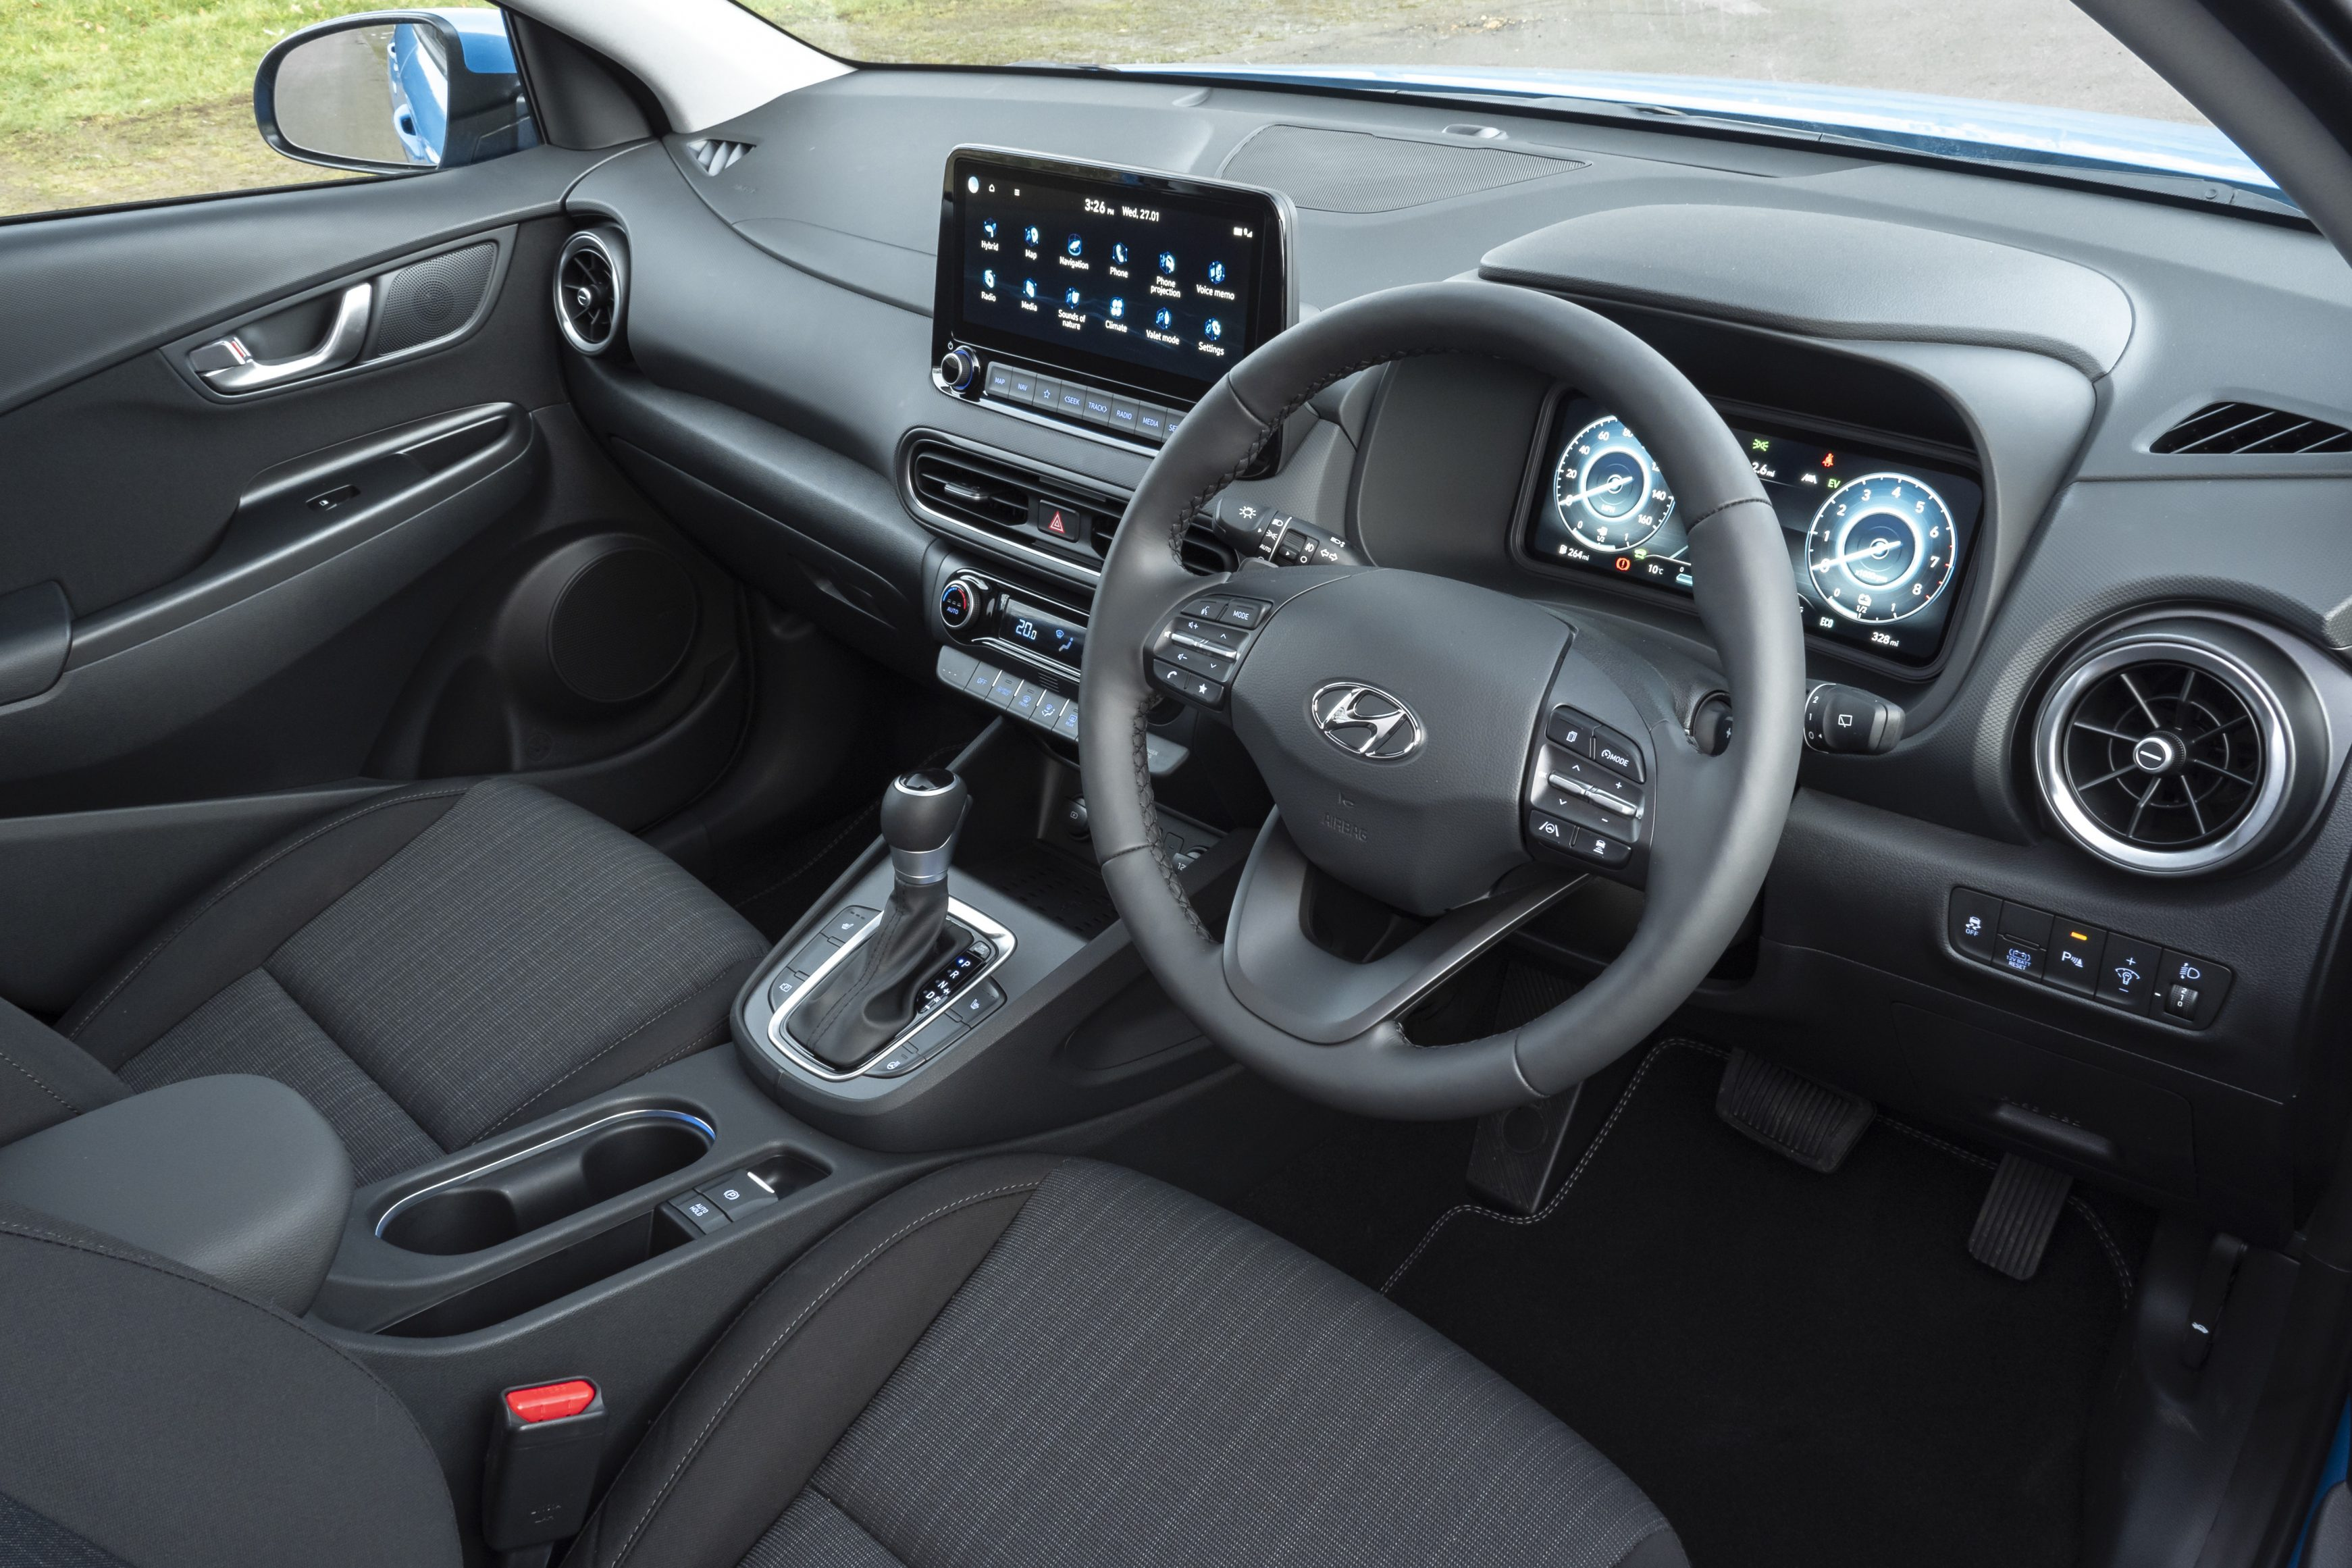 The Hyundai Kona Hybrid 2021 has a tech-savvy interior that is very engaging to interact with